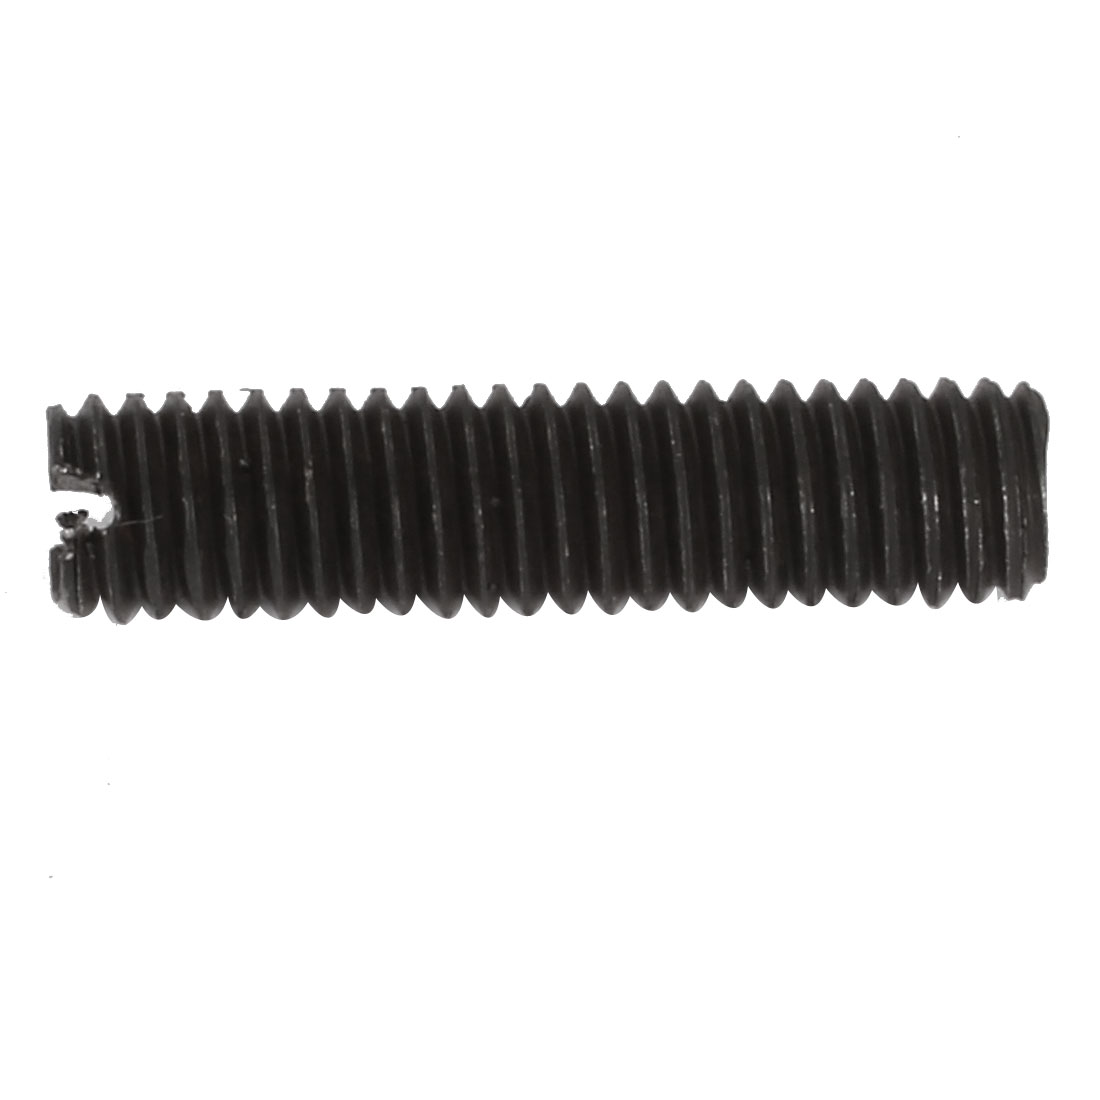 50 Pcs M6x25mm Carbon Steel Slotted Drive Flat Point Grub Screw - image 1 of 3